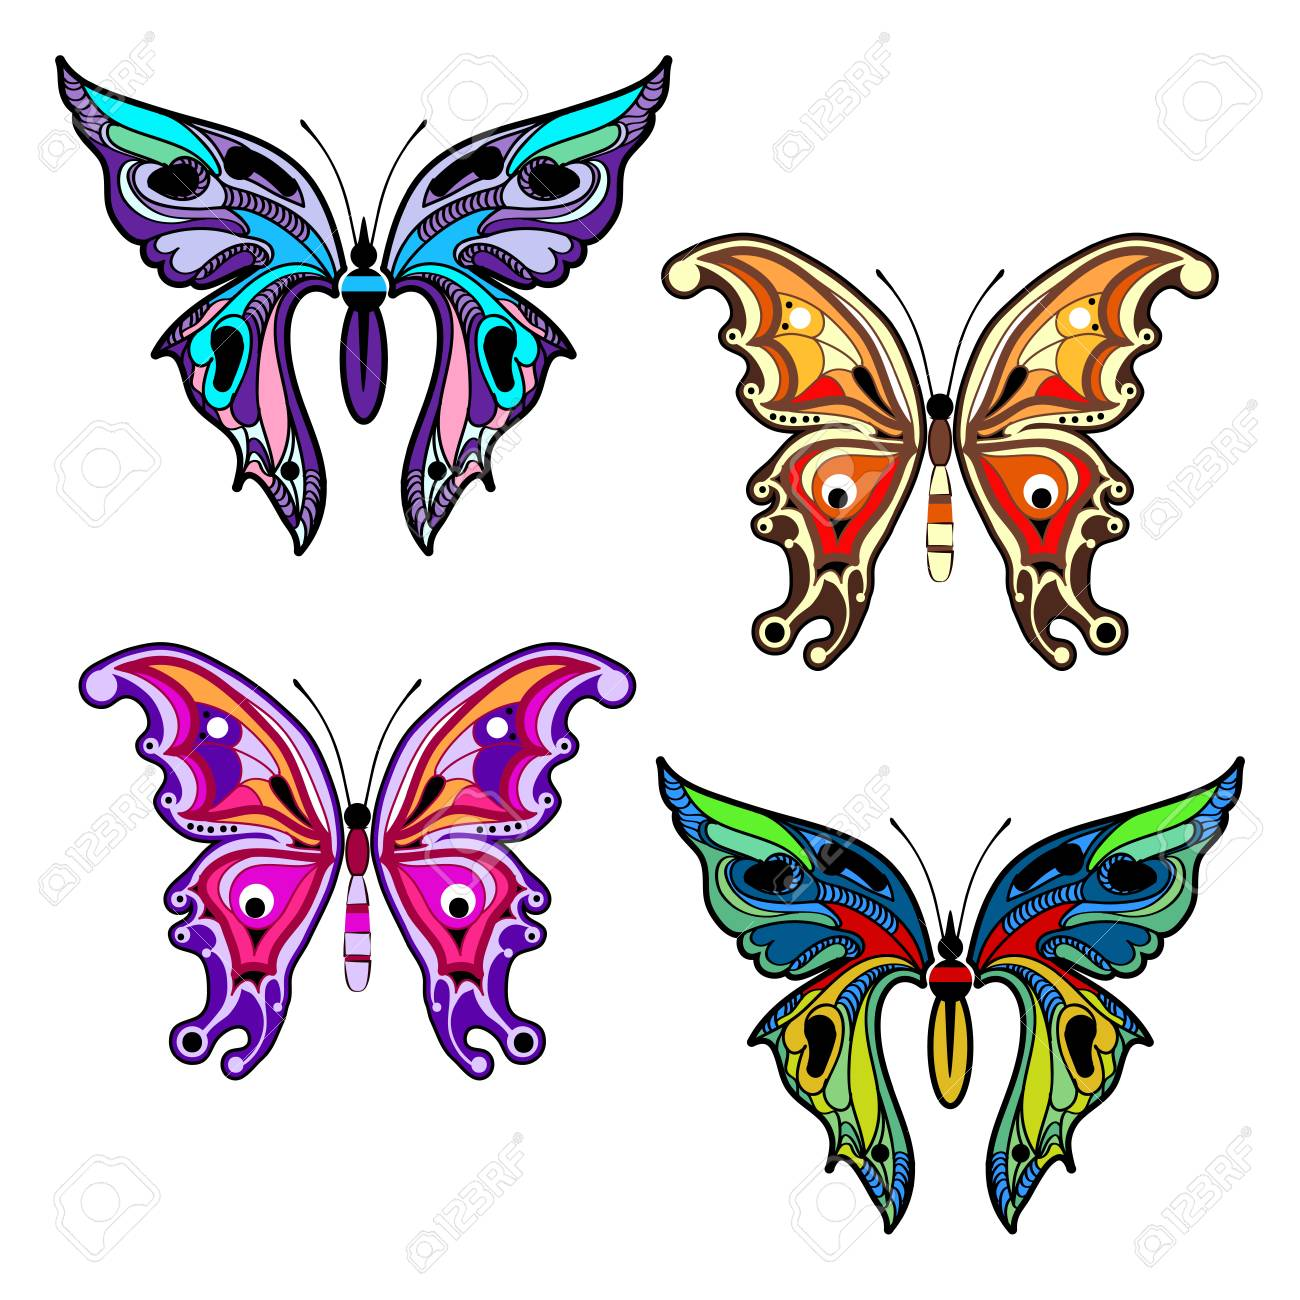 Bright Colorful Butterflies Set Of Filigree Multicolored